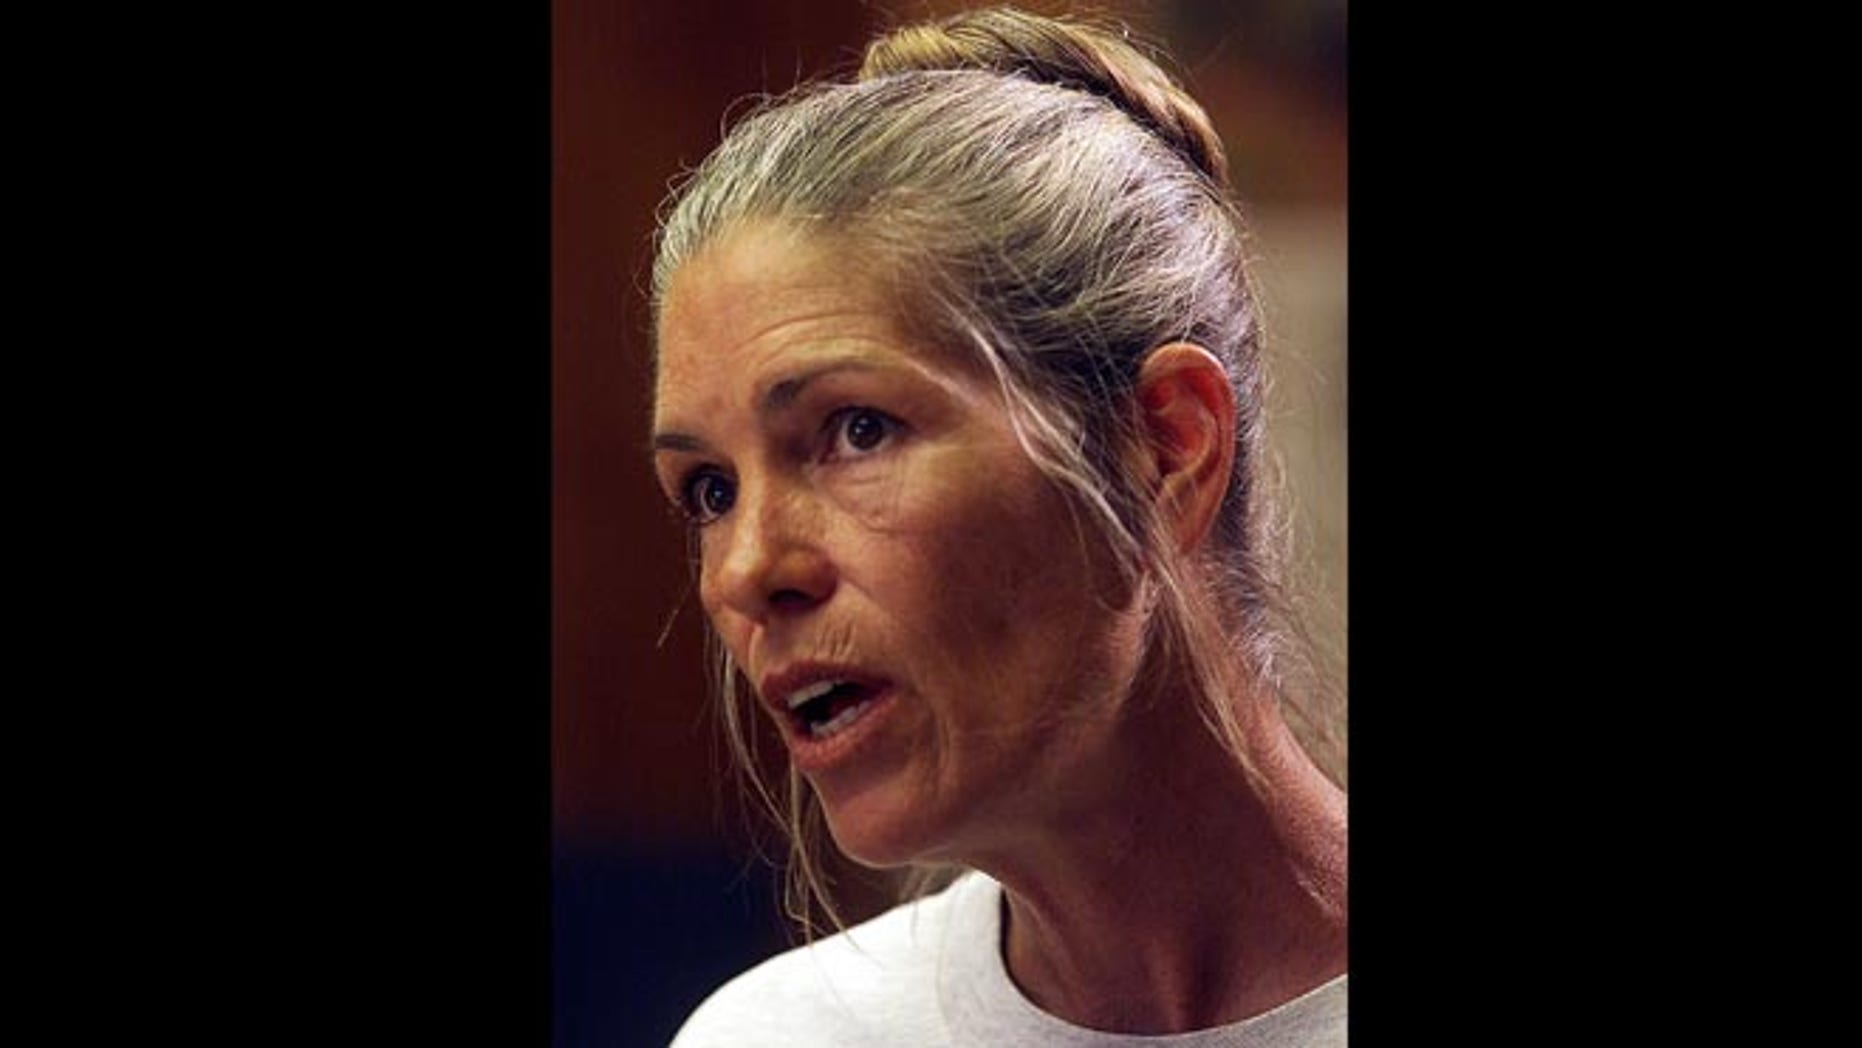 Leslie Van Houten speaks during her parole hearing in this June 28, 2002, file photo taken at the California Institution for Women in Corona, Calif. 44 years after she went to prison.